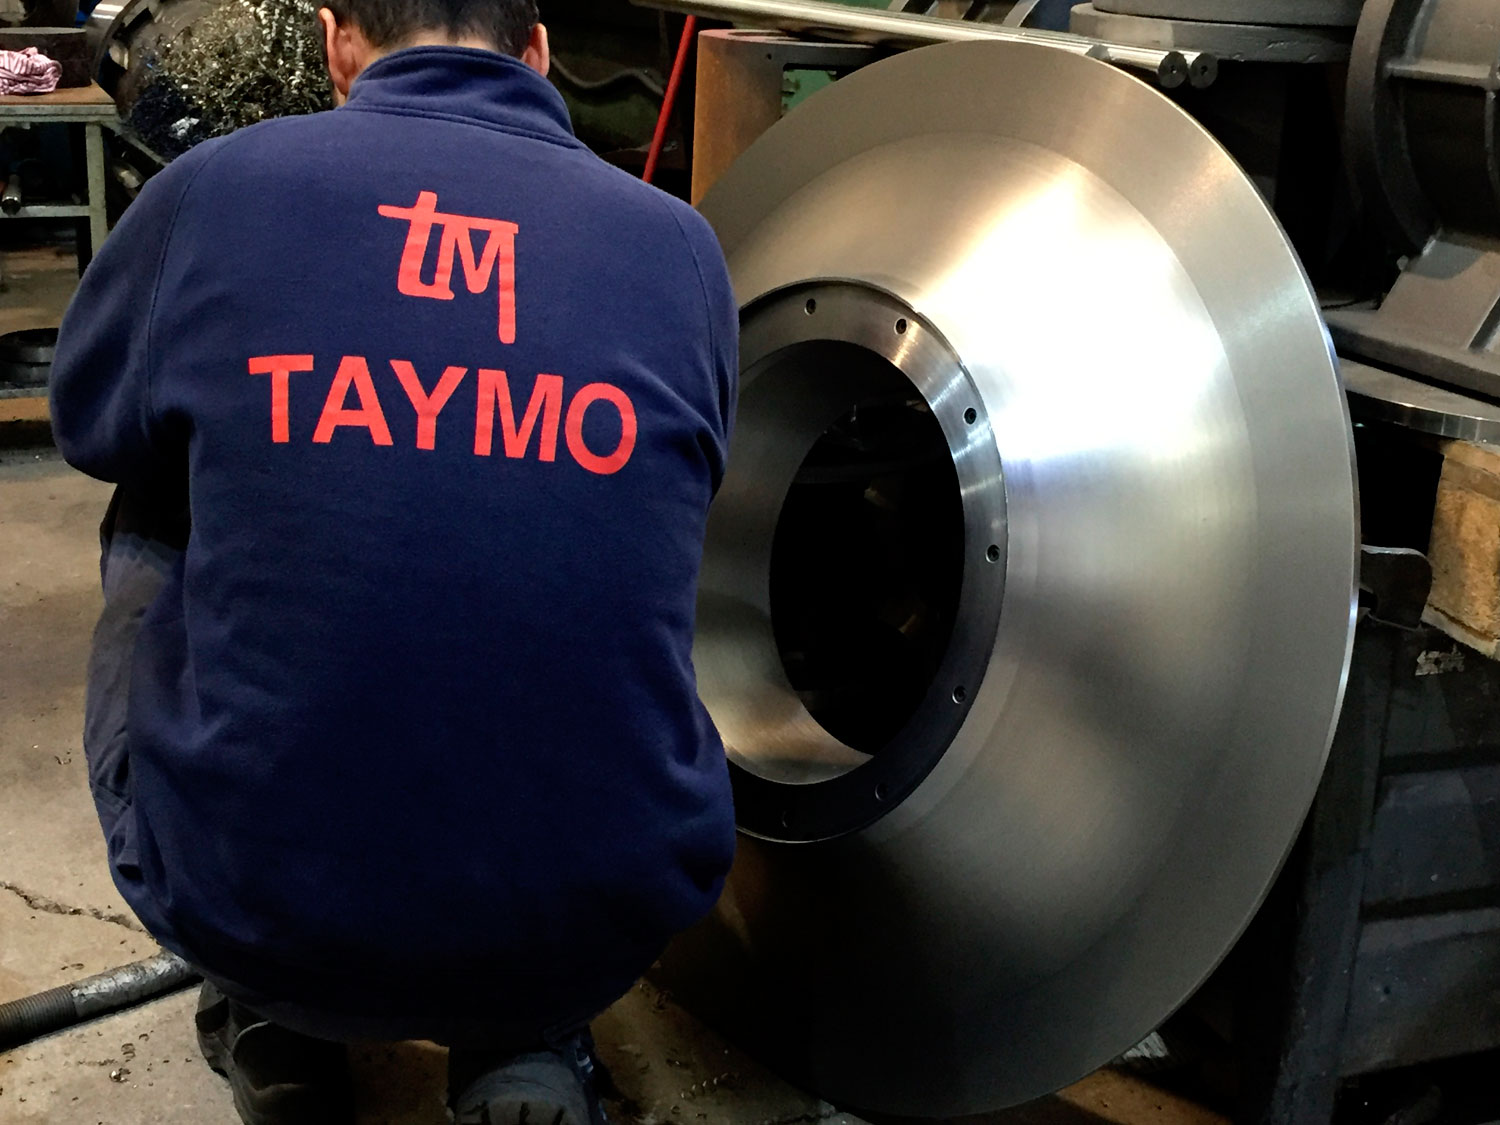 Productos Taymo